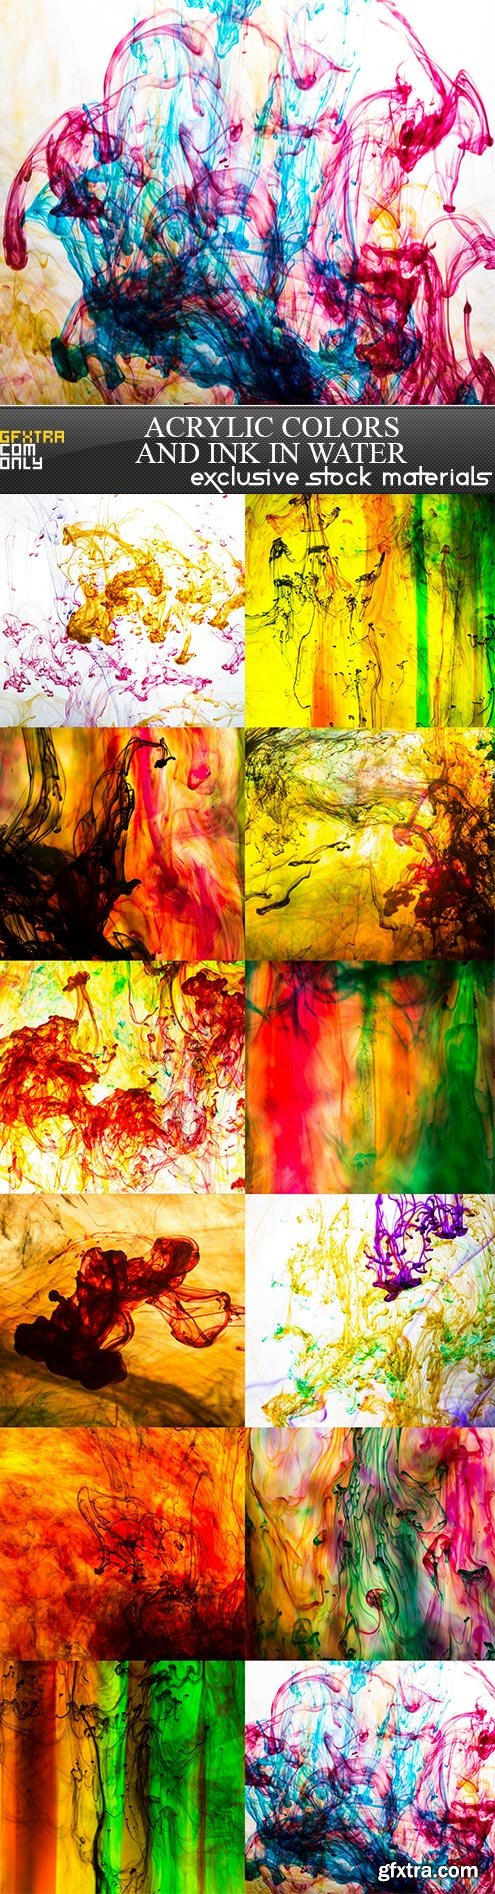 Acrylic colors and ink in water, 12  x  UHQ JPEG